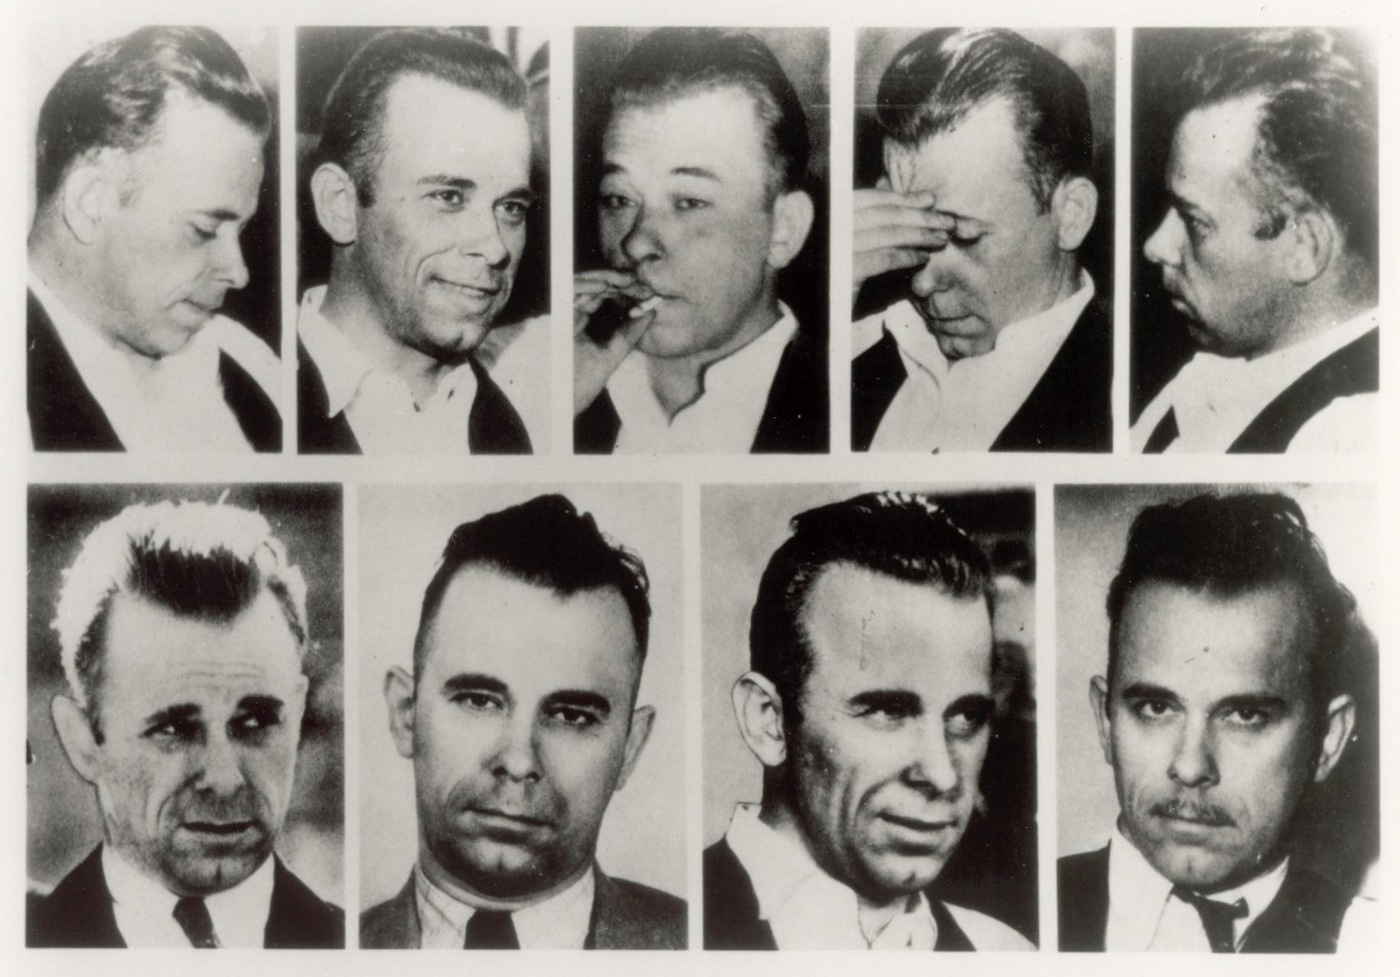 Nine images showing the face of John Dillinger as it changed over the years.